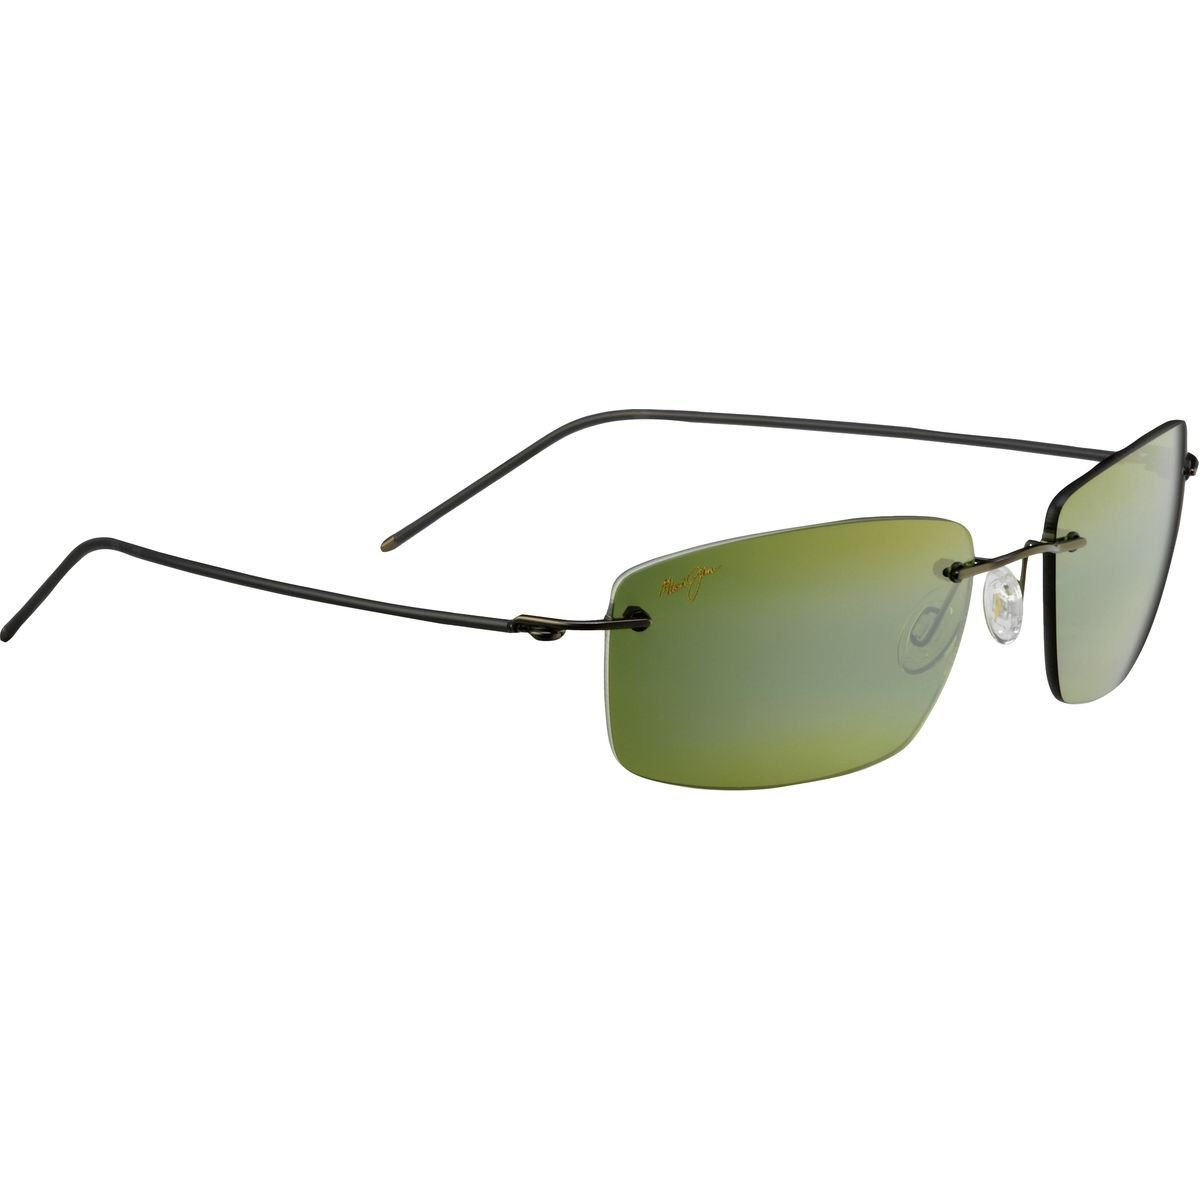 New Unisex Sunglasses Maui Jim Sandhill Polarized HT715-02D  ブラック B00TQKRRT2